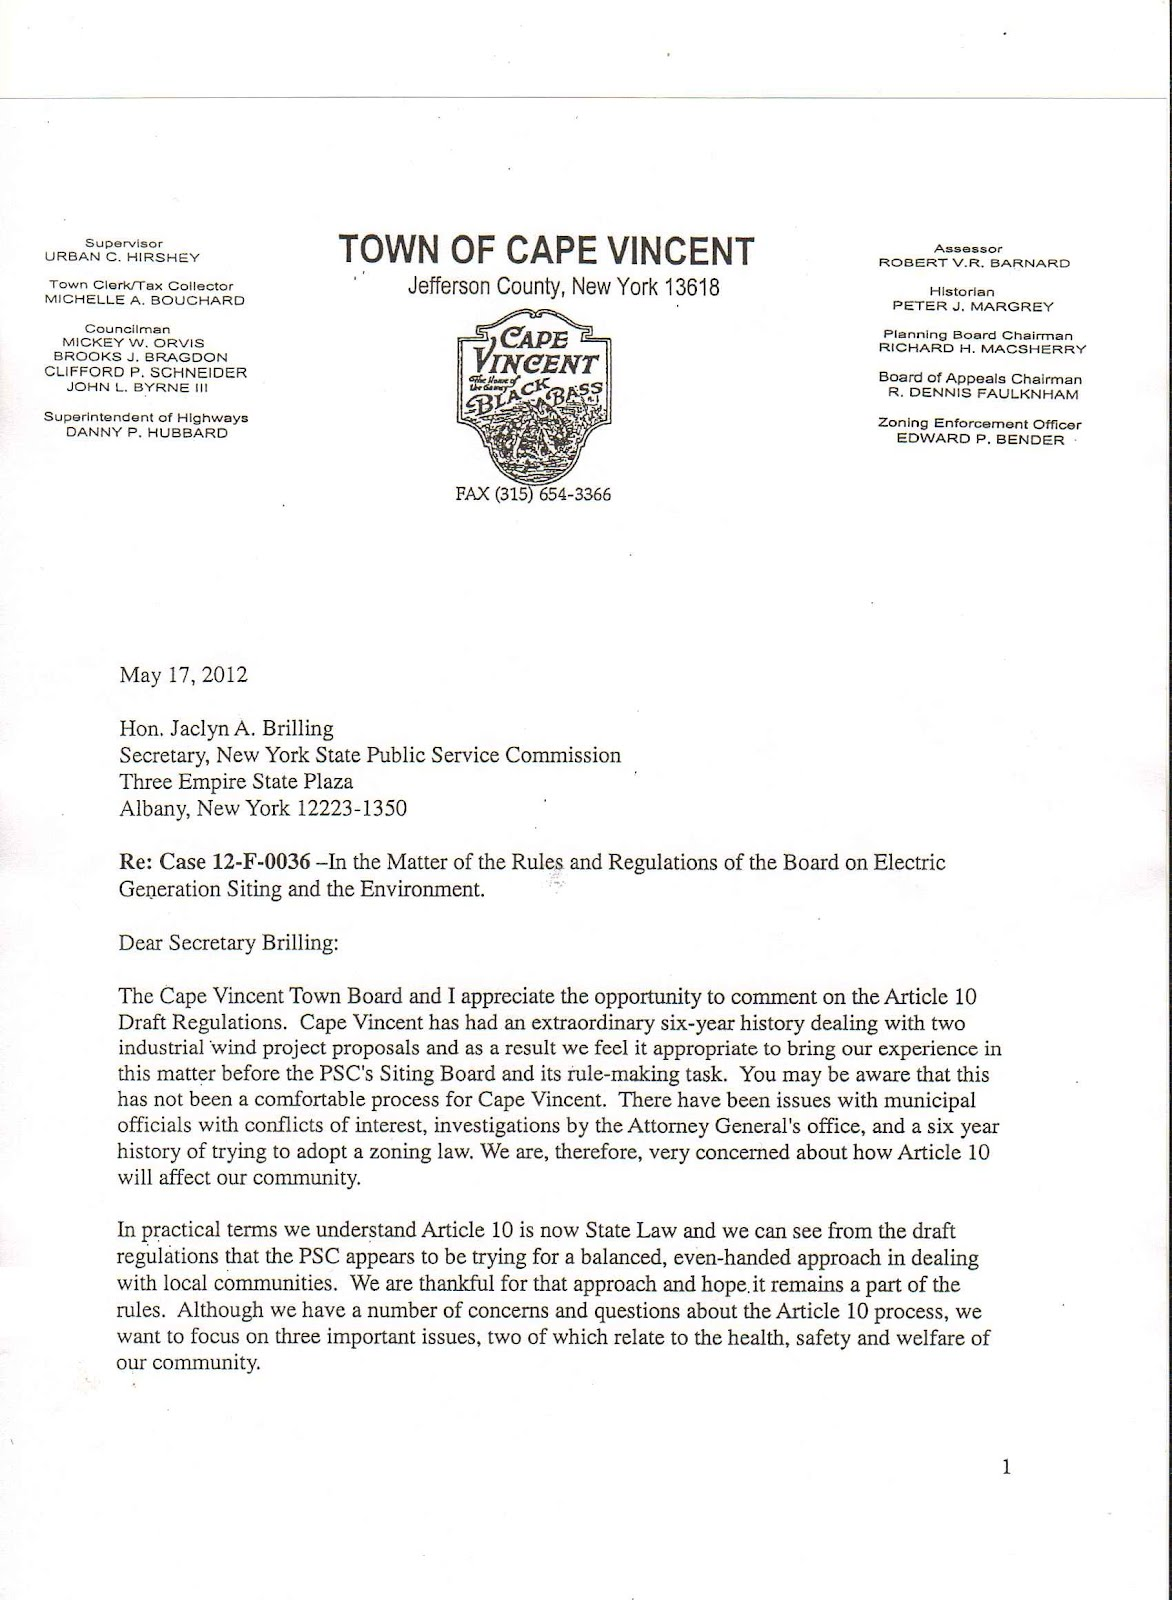 PANDORA'S BOX OF ROCKS: Town of Cape Vincent Comment Letter to NYS